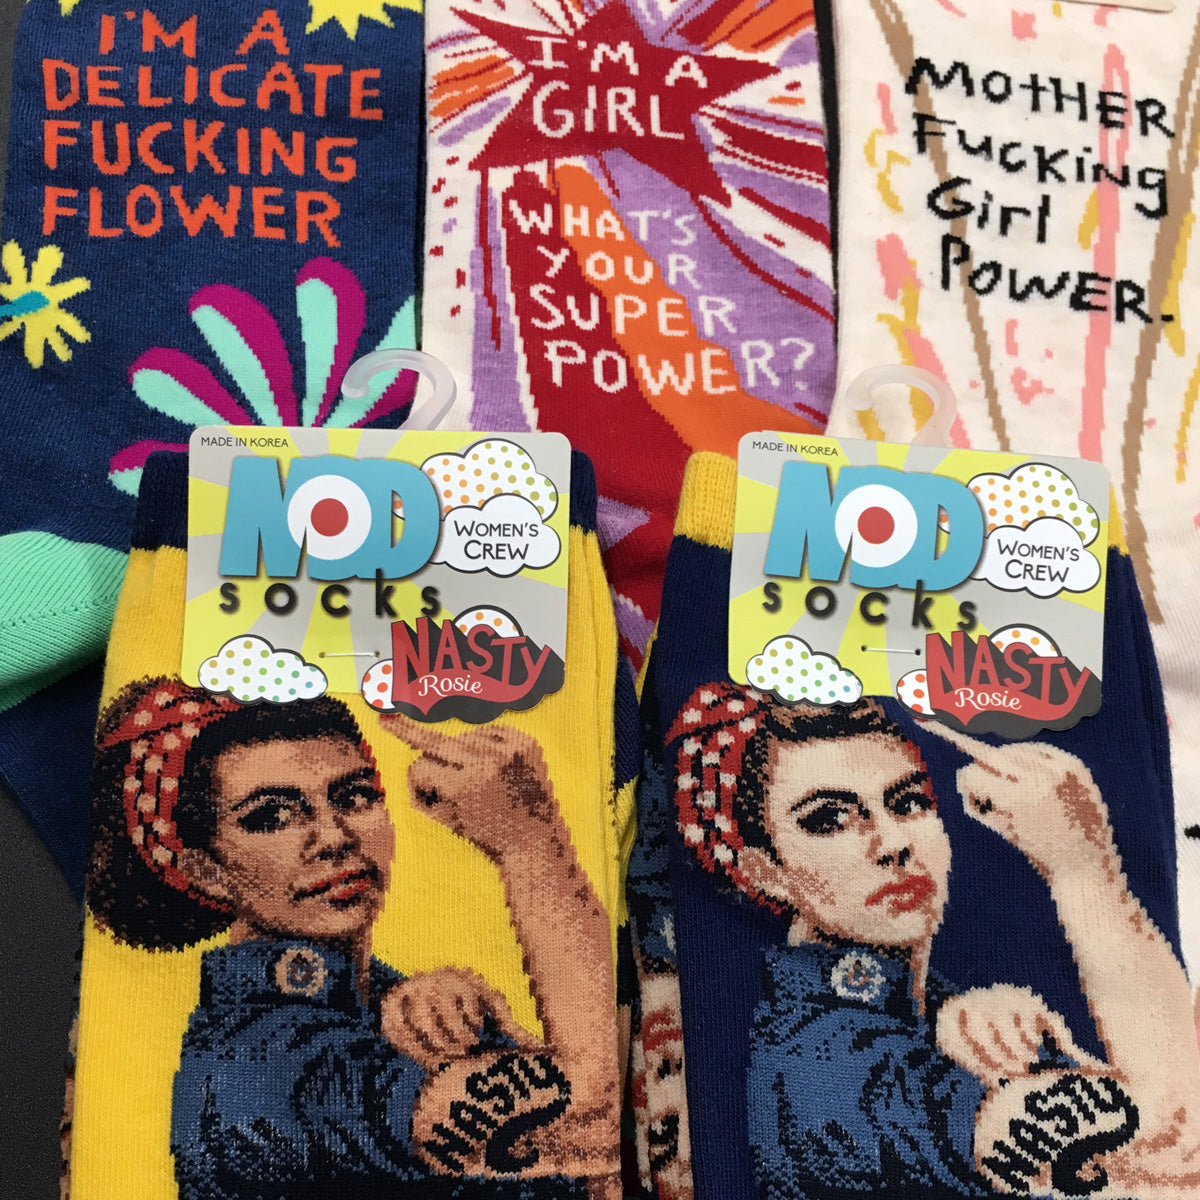 ModSocks' Rosie the Riveter Socks & sassy swear word socks by Blue Q are part of our Girl Power Socks collection.